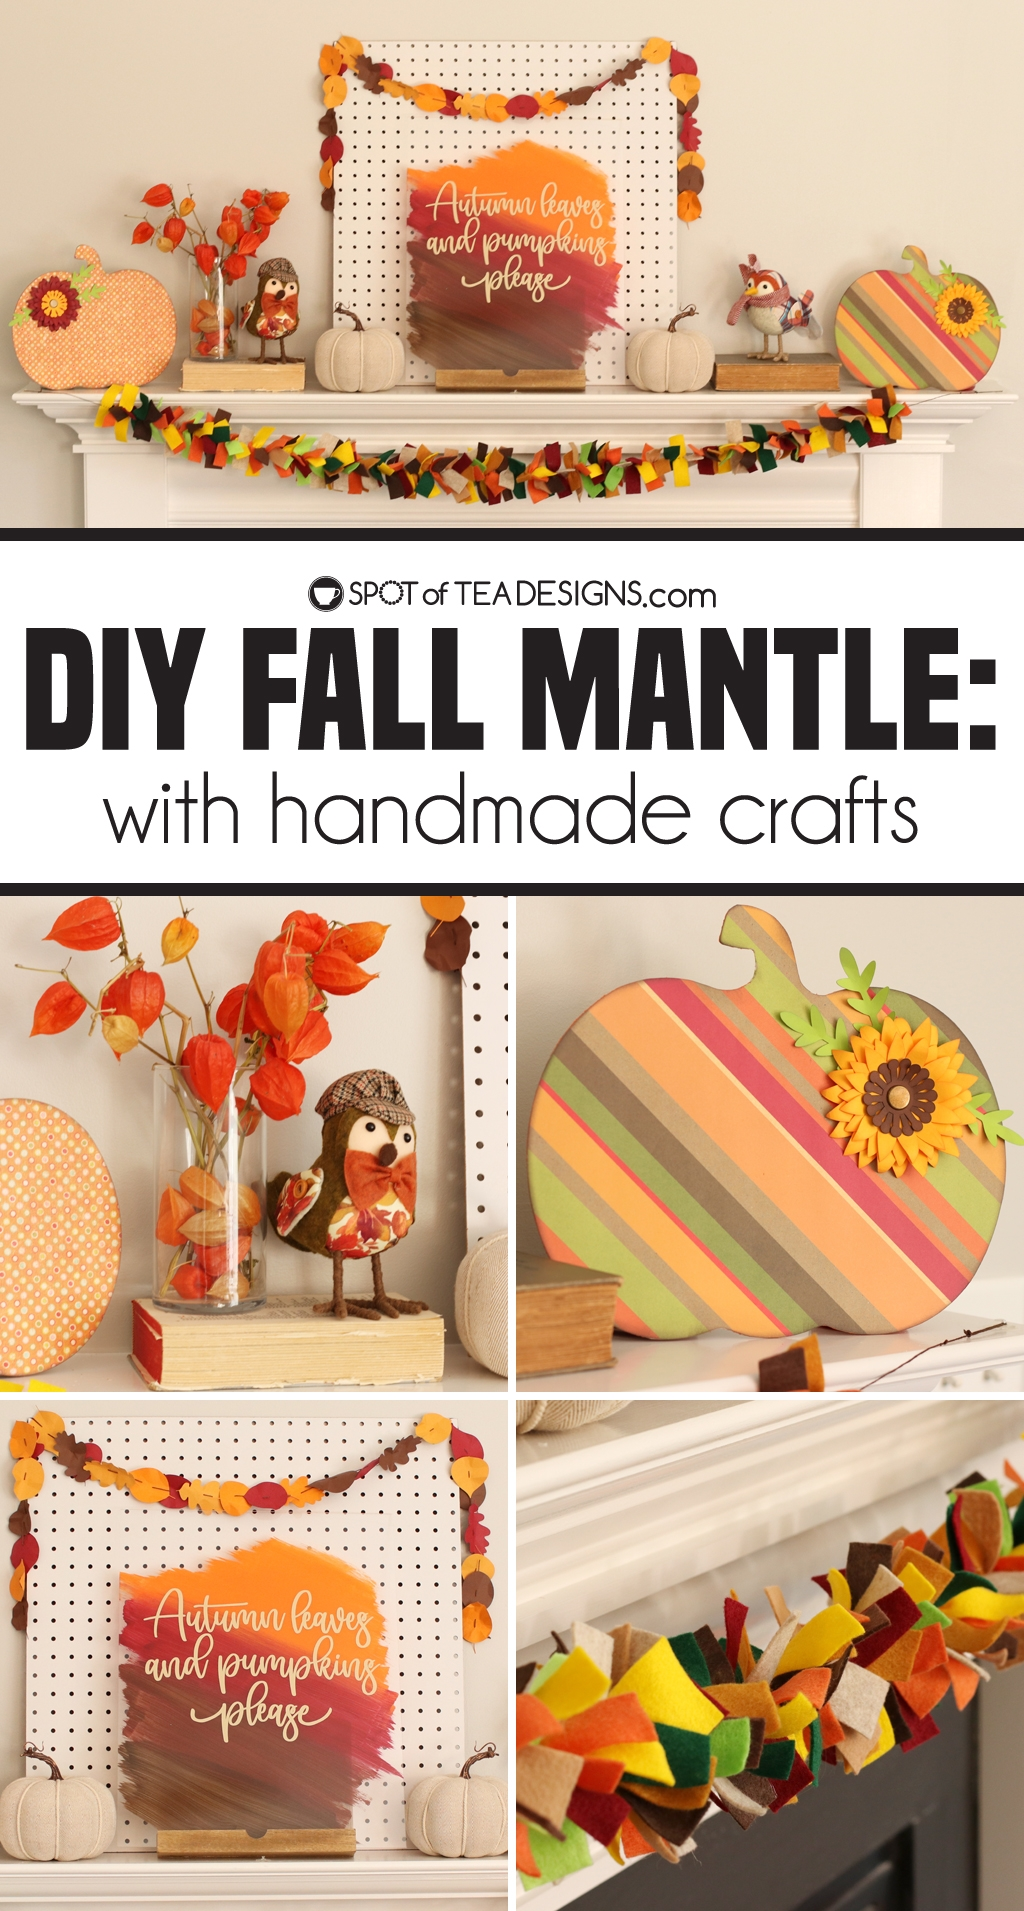 DIY Fall mantle made with handmade crafts | spotofteadesigns.com